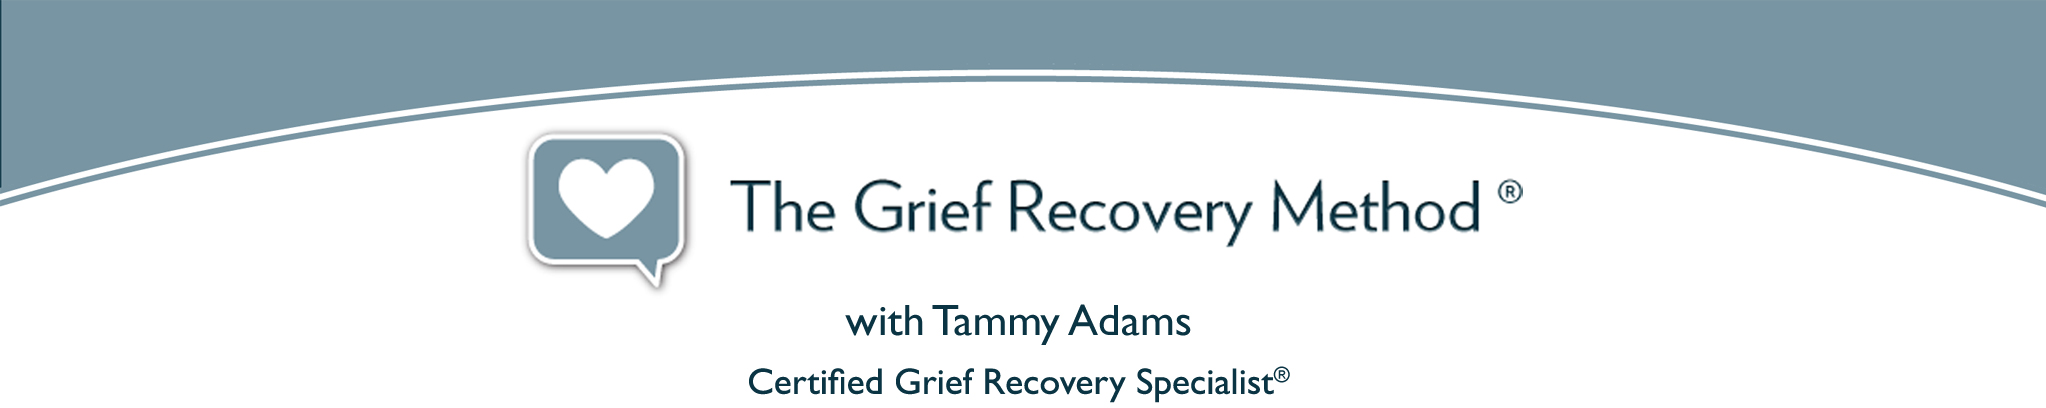 Grief Recovery And Counseling